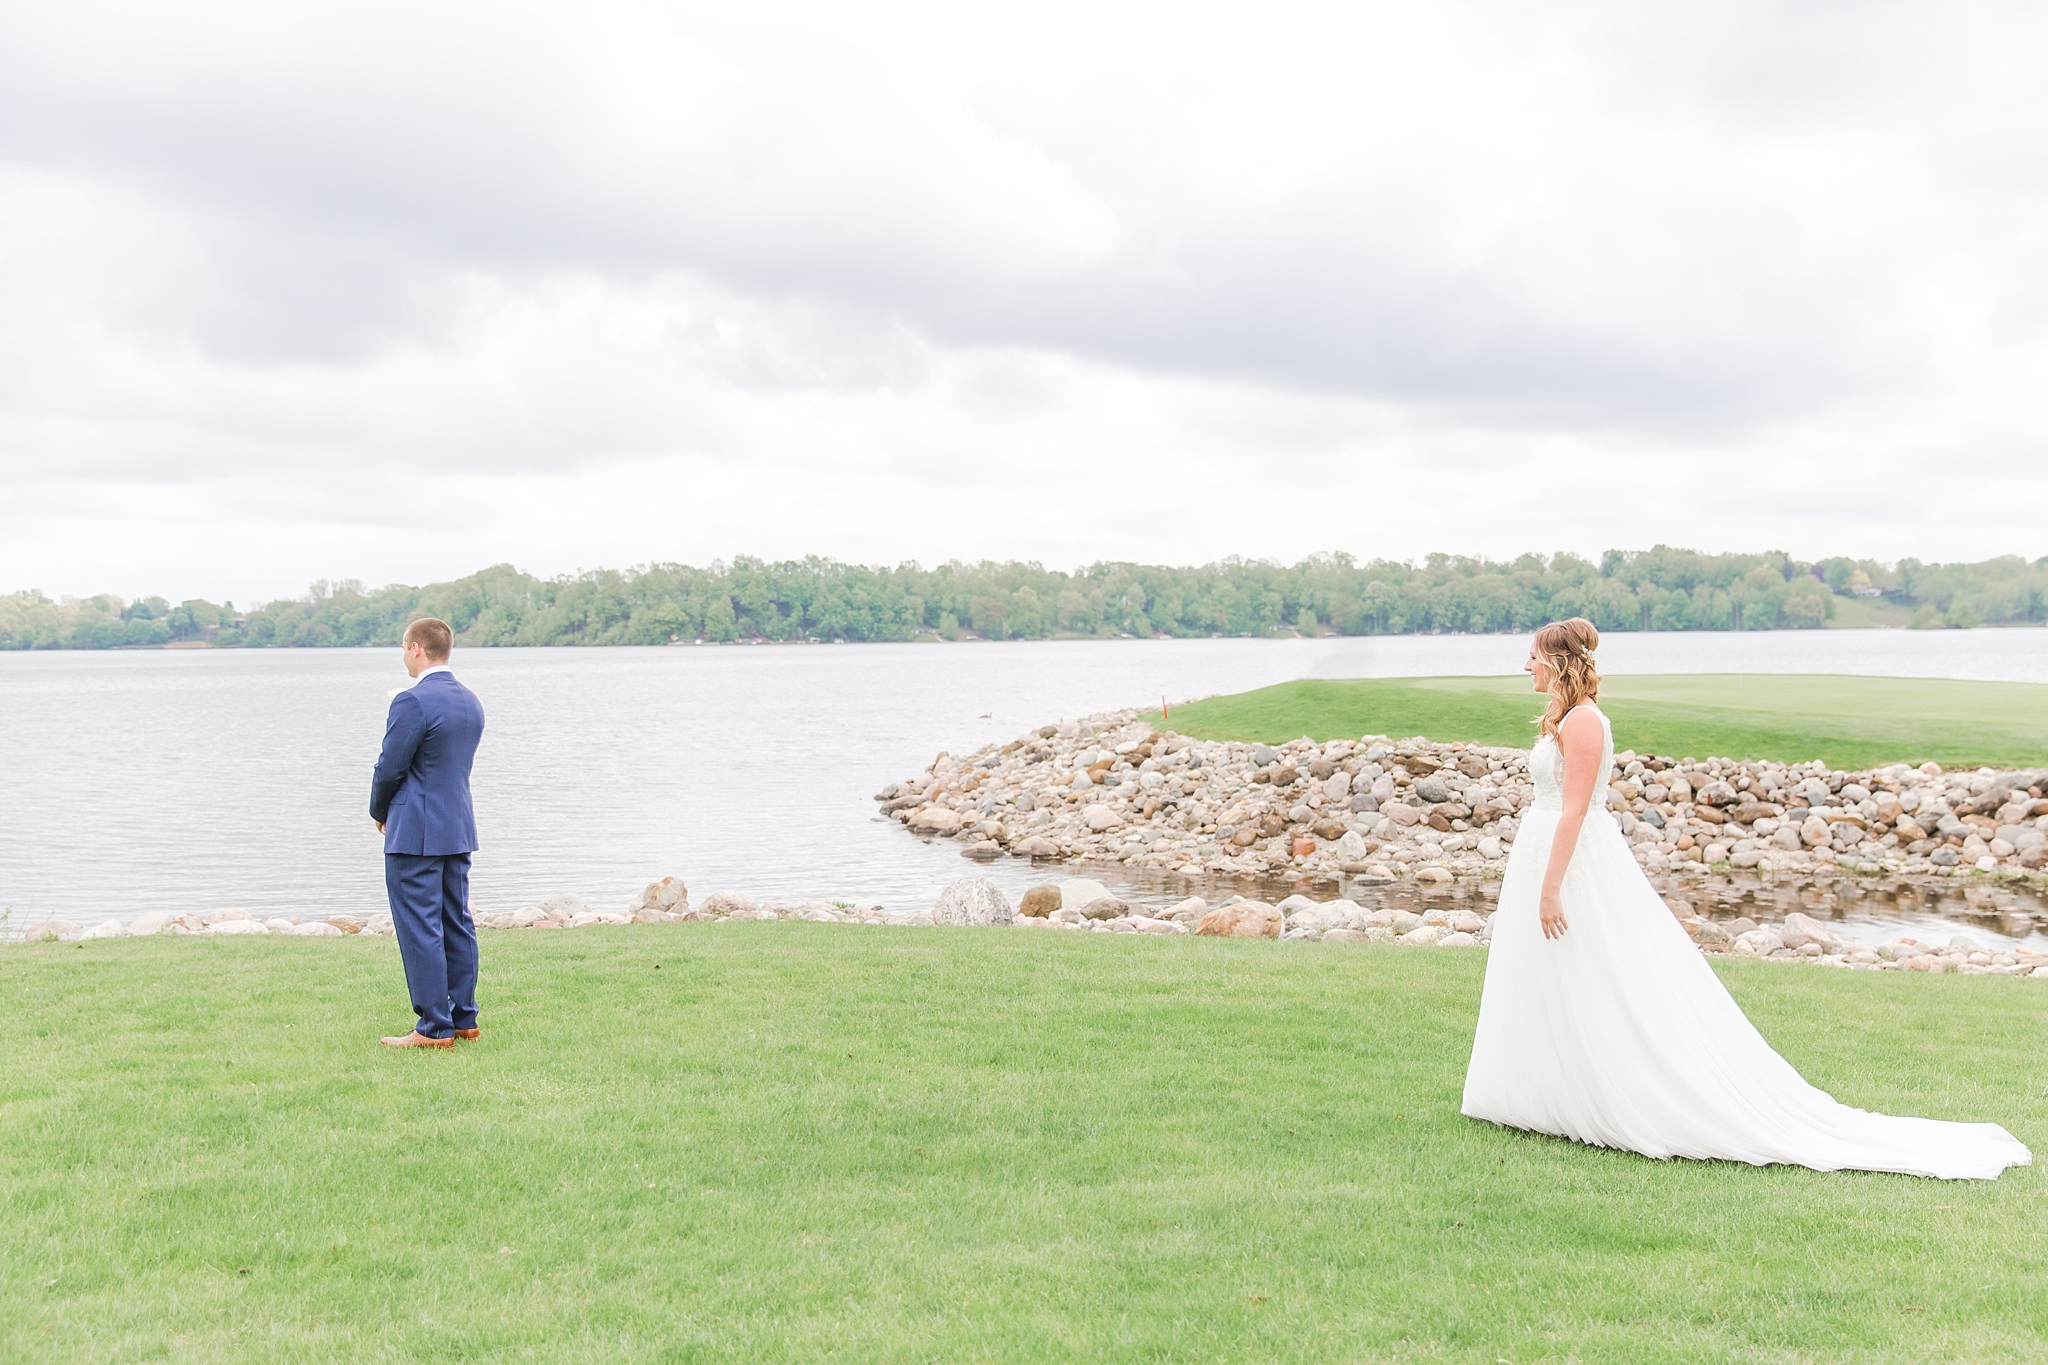 joyful-candid-laid-back-wedding-photos-in-ann-arbor-michigan-and-at-the-eagle-crest-golf-resort-by-courtney-carolyn-photography_0023.jpg